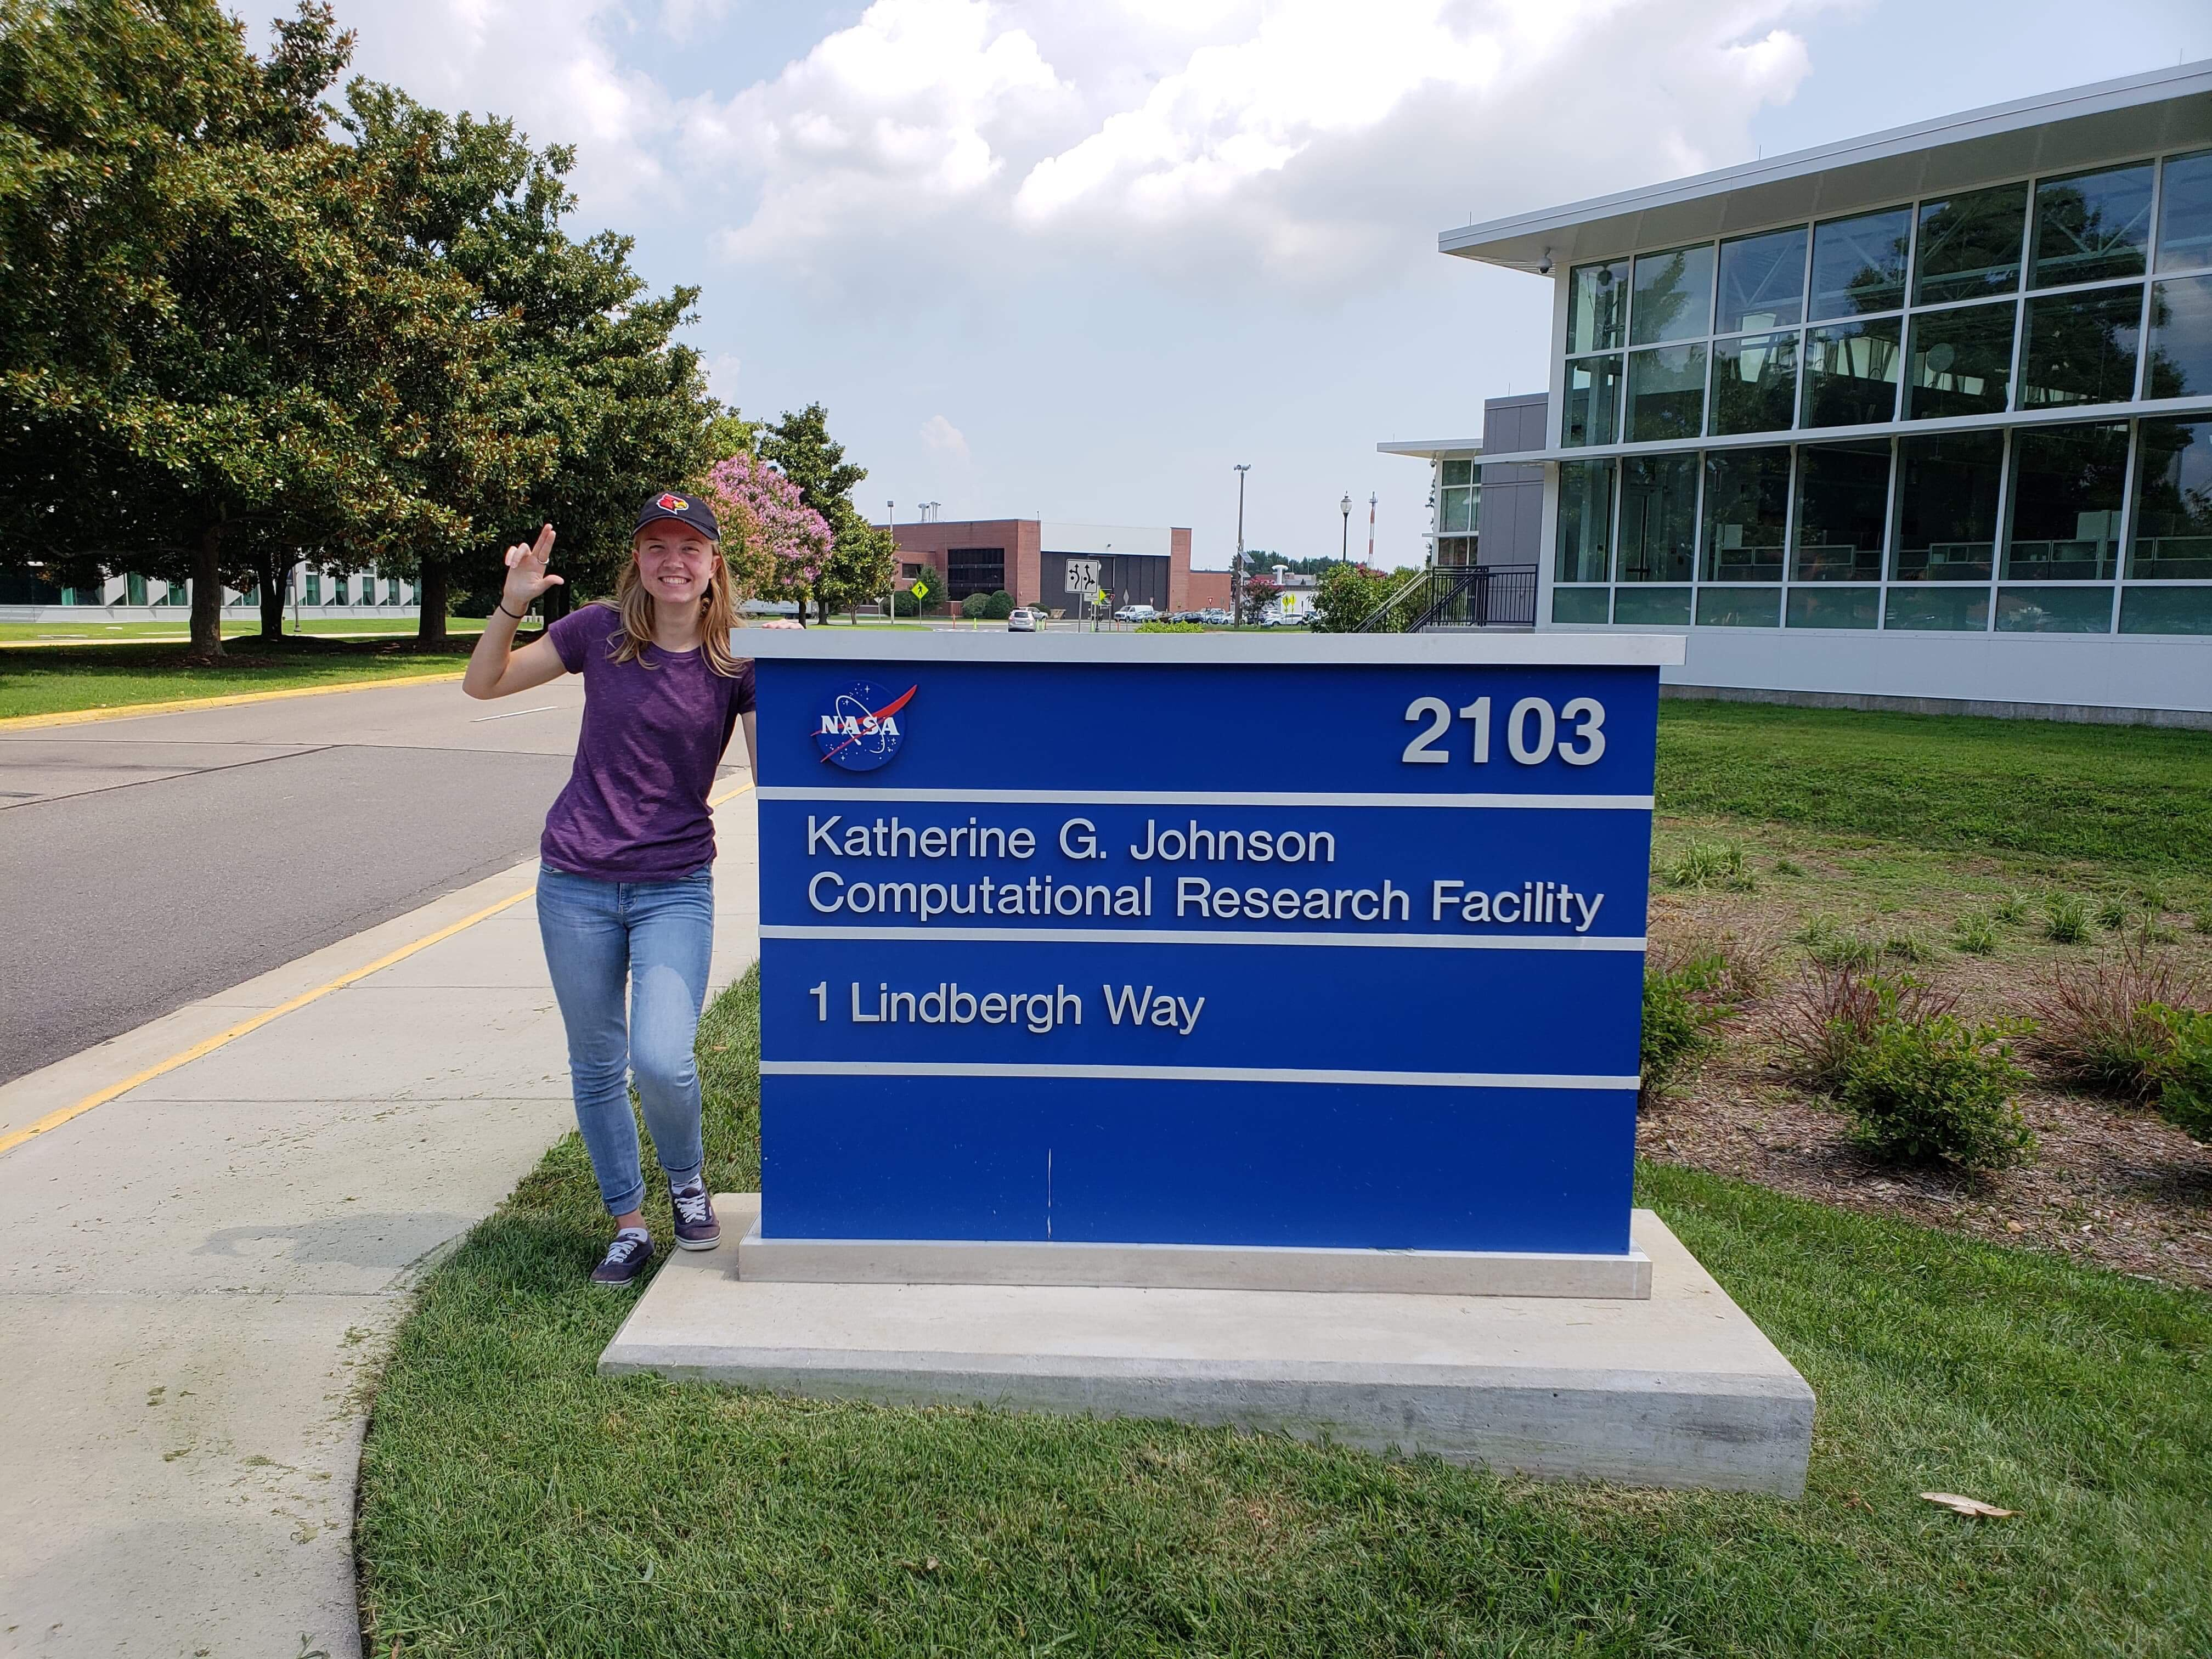 Meghan Carricon in front of NASA's 'Katherine G. Johnson Computational Research Facility